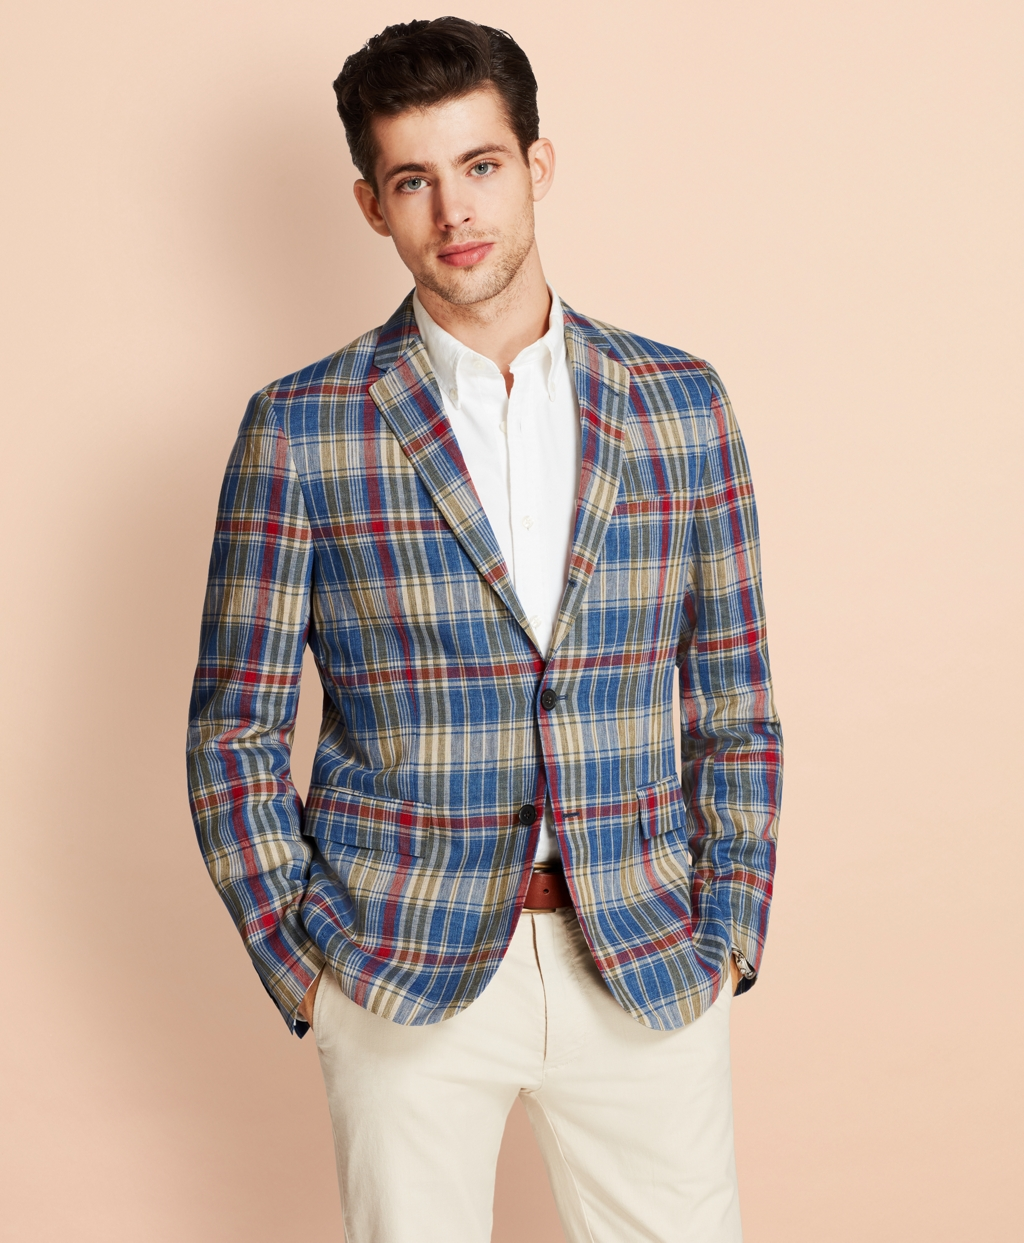 1950s Style Mens Suits | 50s Suits Brooks Brothers Mens Plaid Three-Button Linen Twill Sport Coat $358.00 AT vintagedancer.com